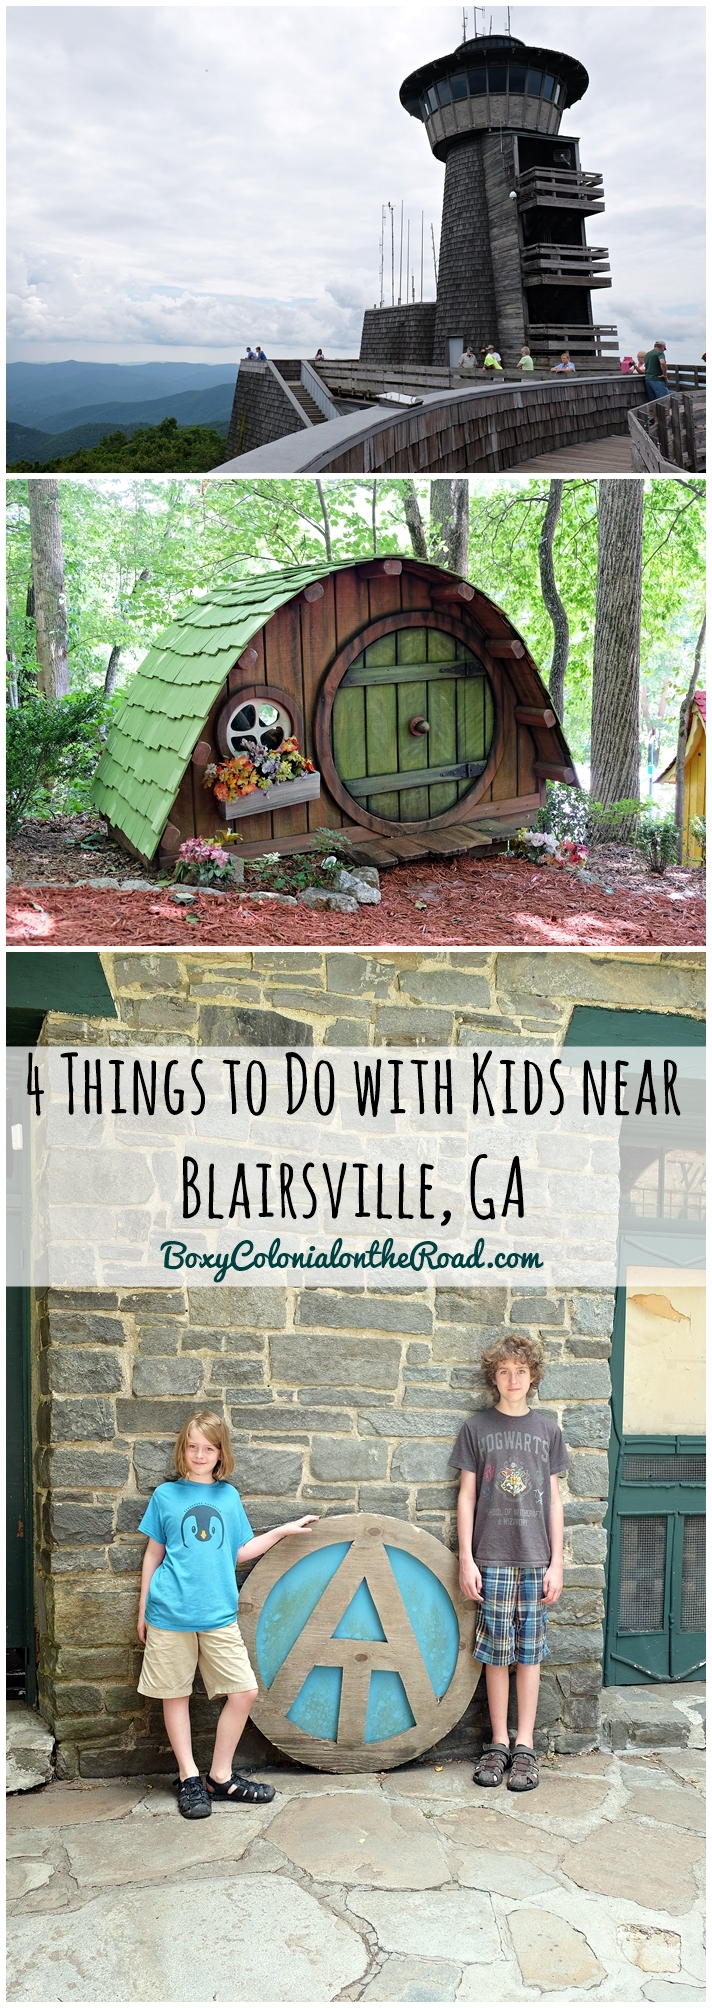 Exlporing the area around Blairsville, GA and Vogel State Park with kids: Brasstown Bald, Sleepy Hollow Enterprises, Helton Creek Falls, and Mountain Crossings at Walasi-Yi